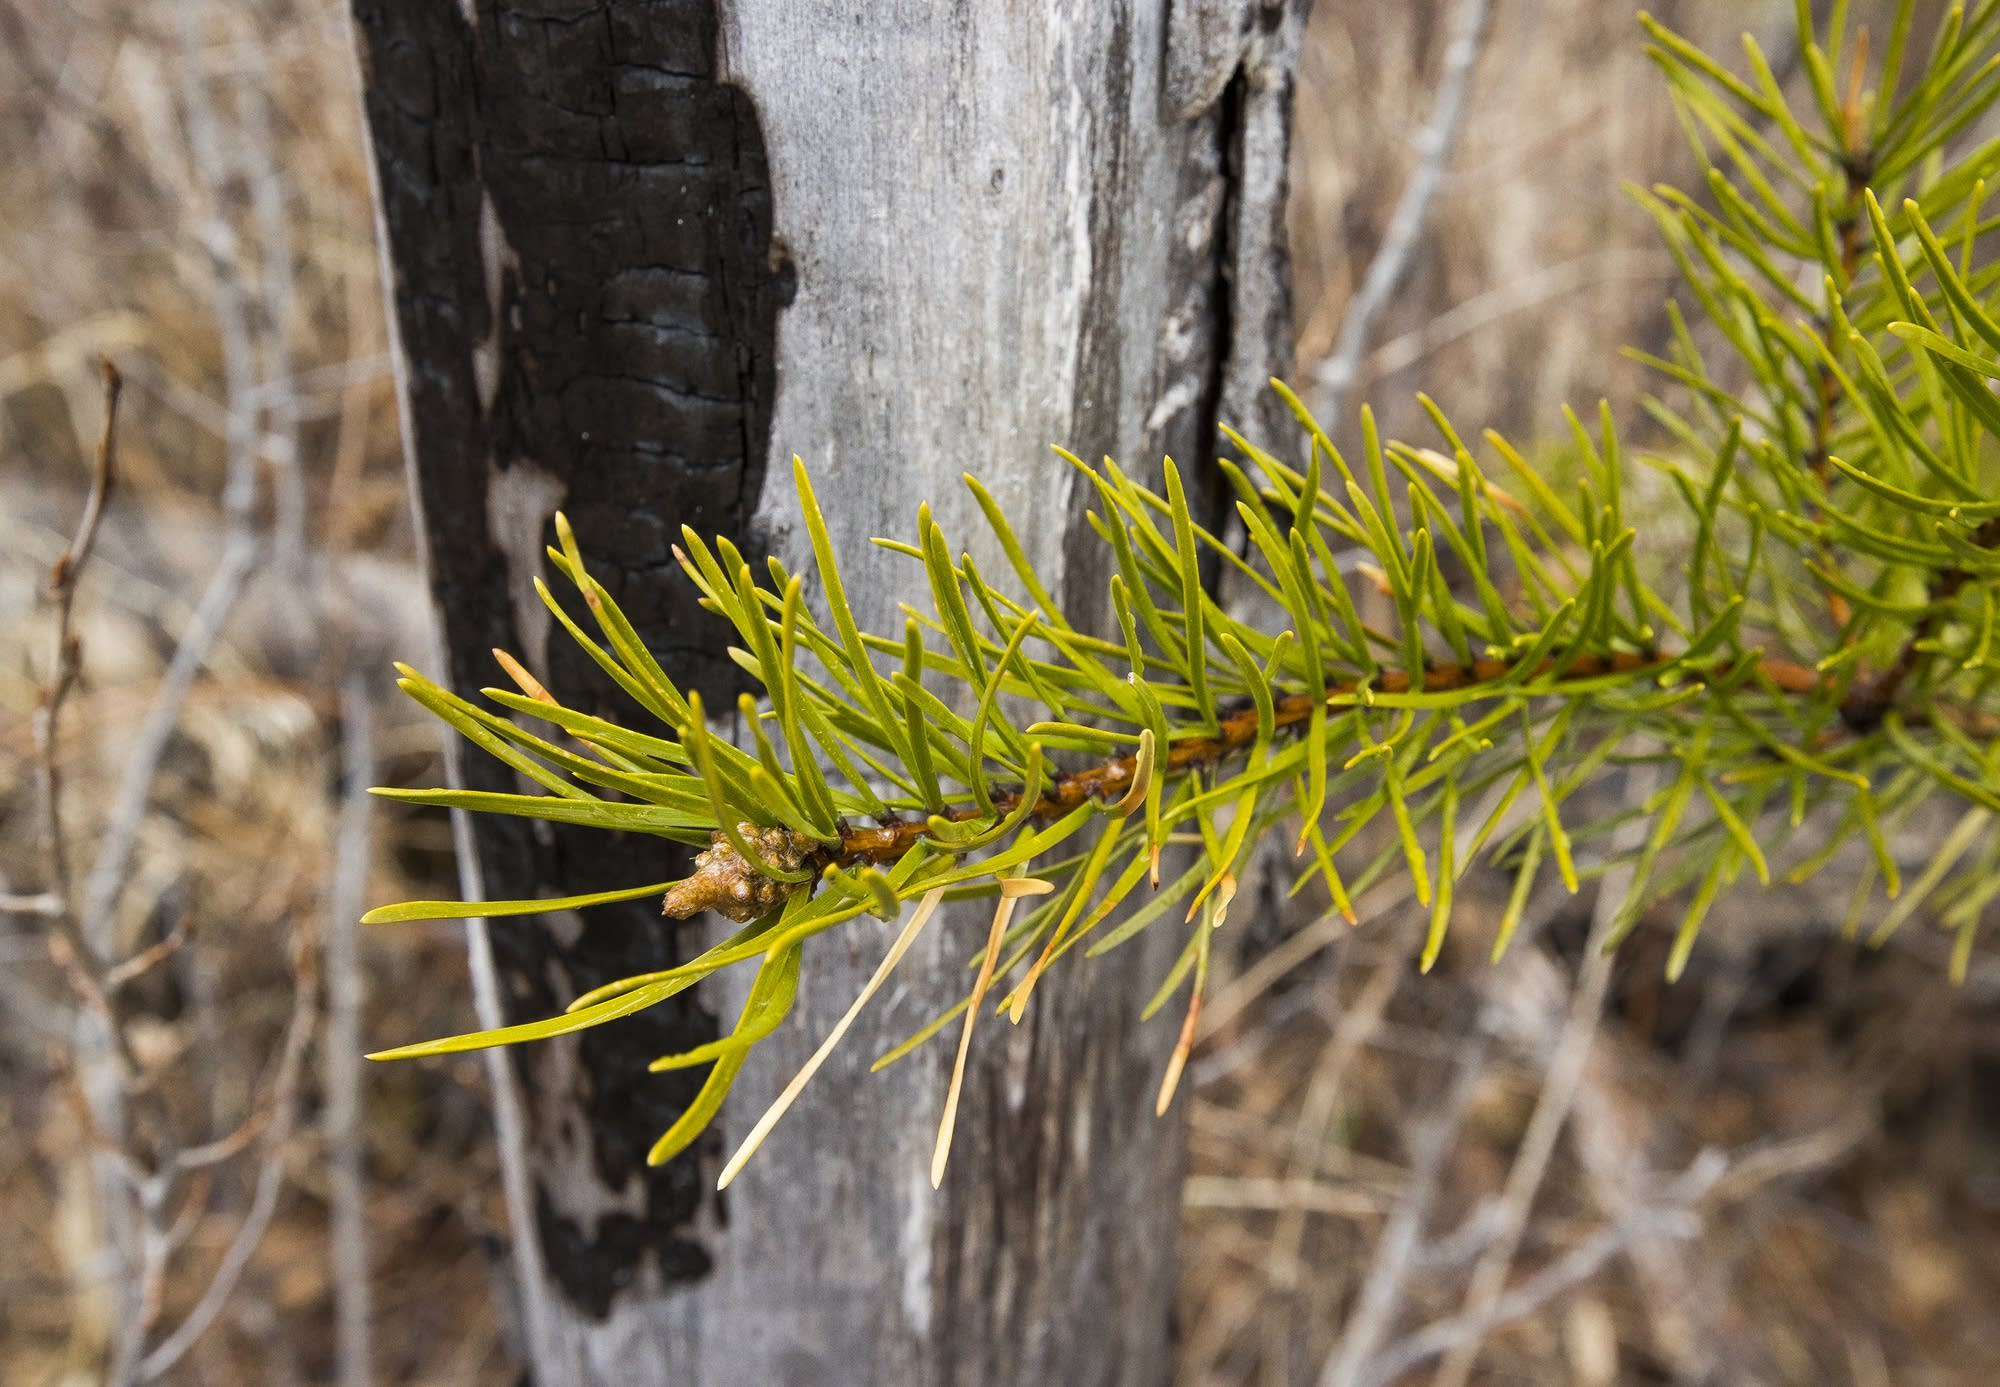 A young jack pine branch in front of a dead and blackened tree trunk.